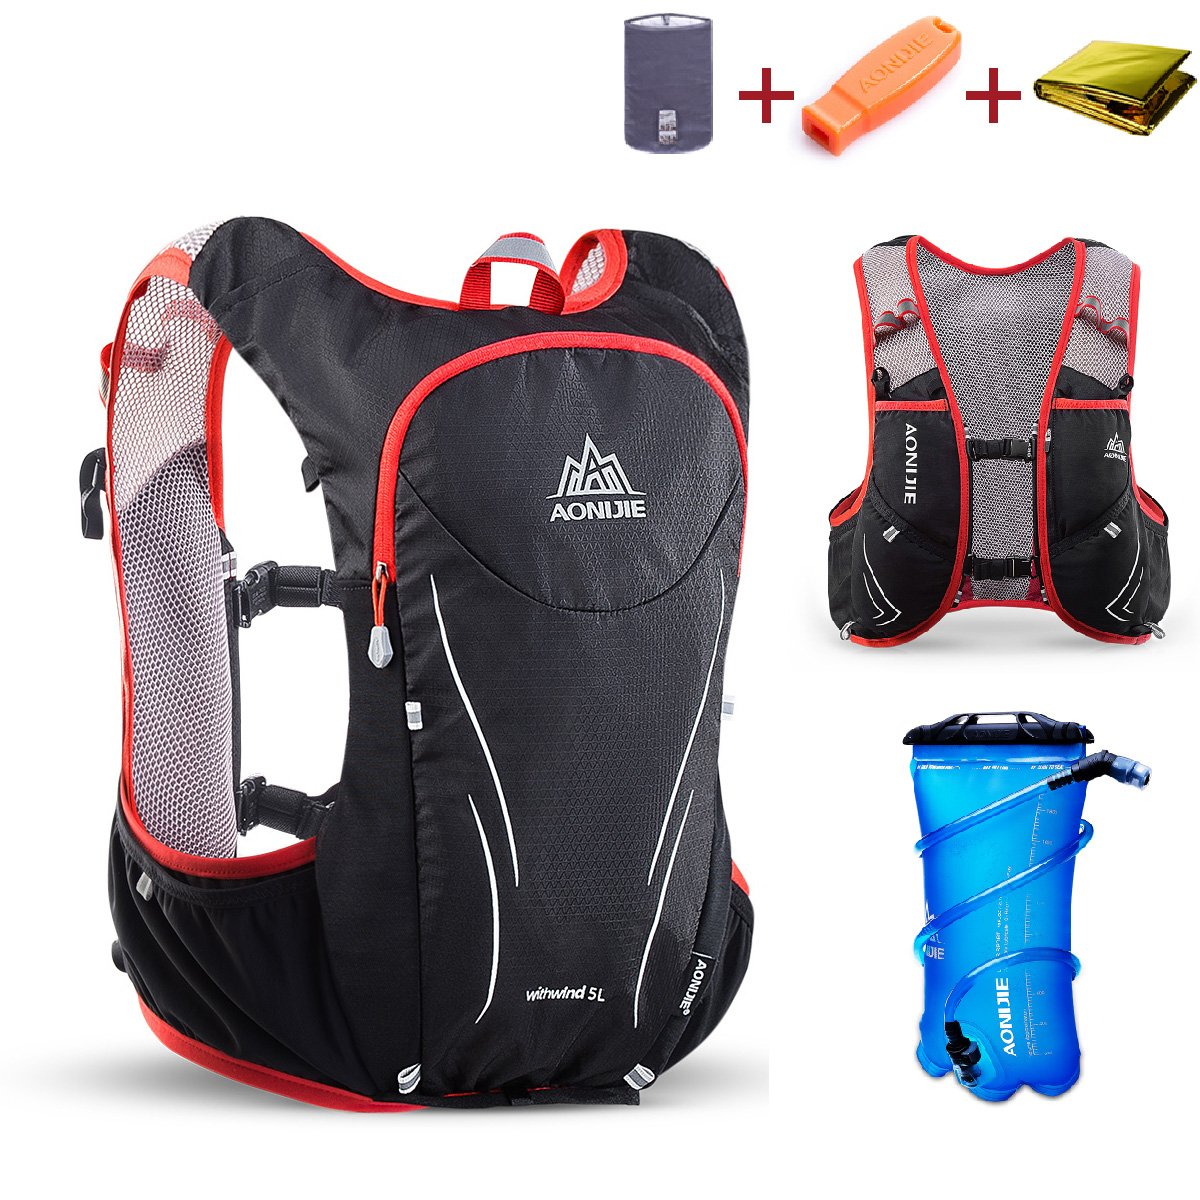 TRIWONDER Hydration Pack Backpack 5L Lightweight Deluxe Marathoner Running Race Hydration Vest (Black & Red - with 2L TPU Water Bladder, M/L - 34.6-39.4in)